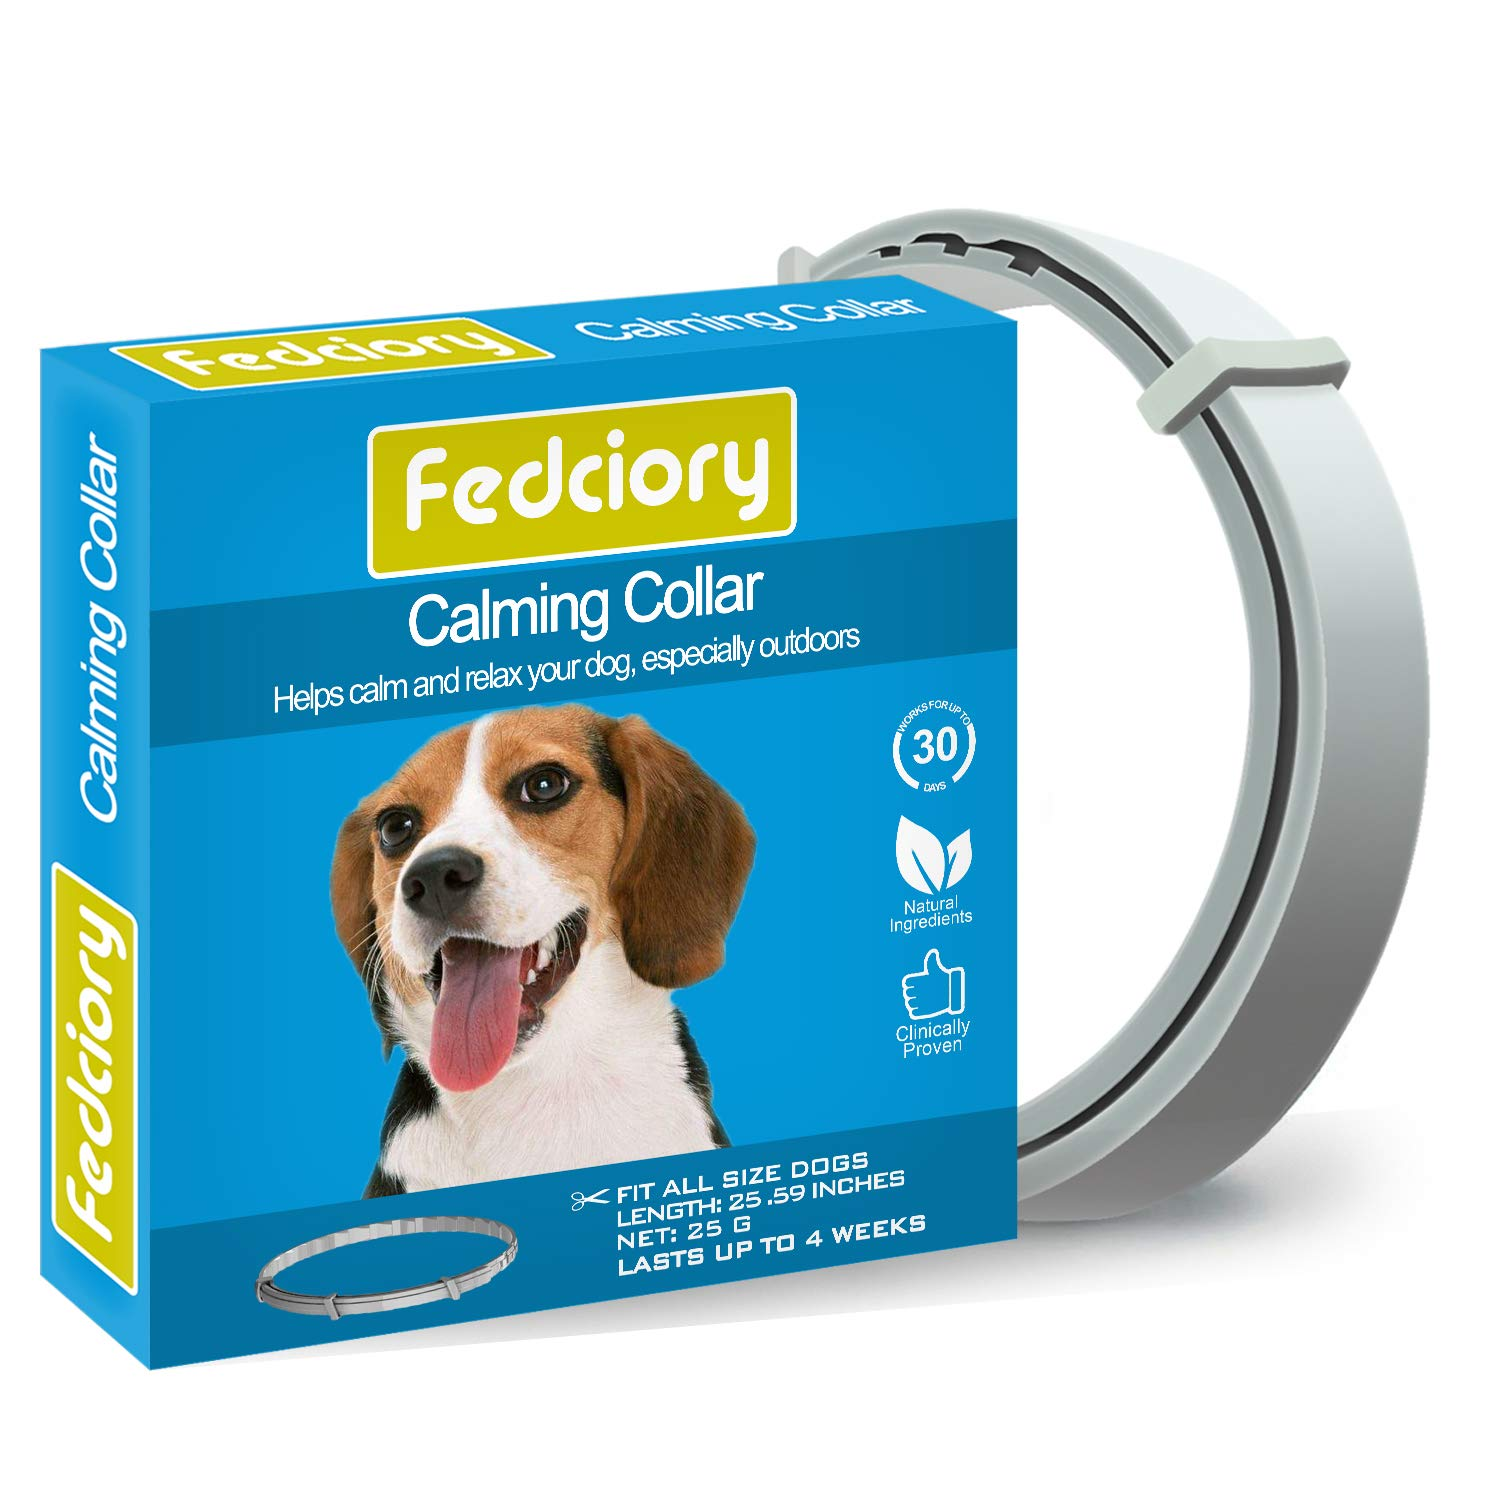 Fedciory Calming Collar for Dogs Adjustable Pheromone Calm Collars fits All Small Medium and Large Dog to Relieve Anxiety -25.59 Inches by Fedciory